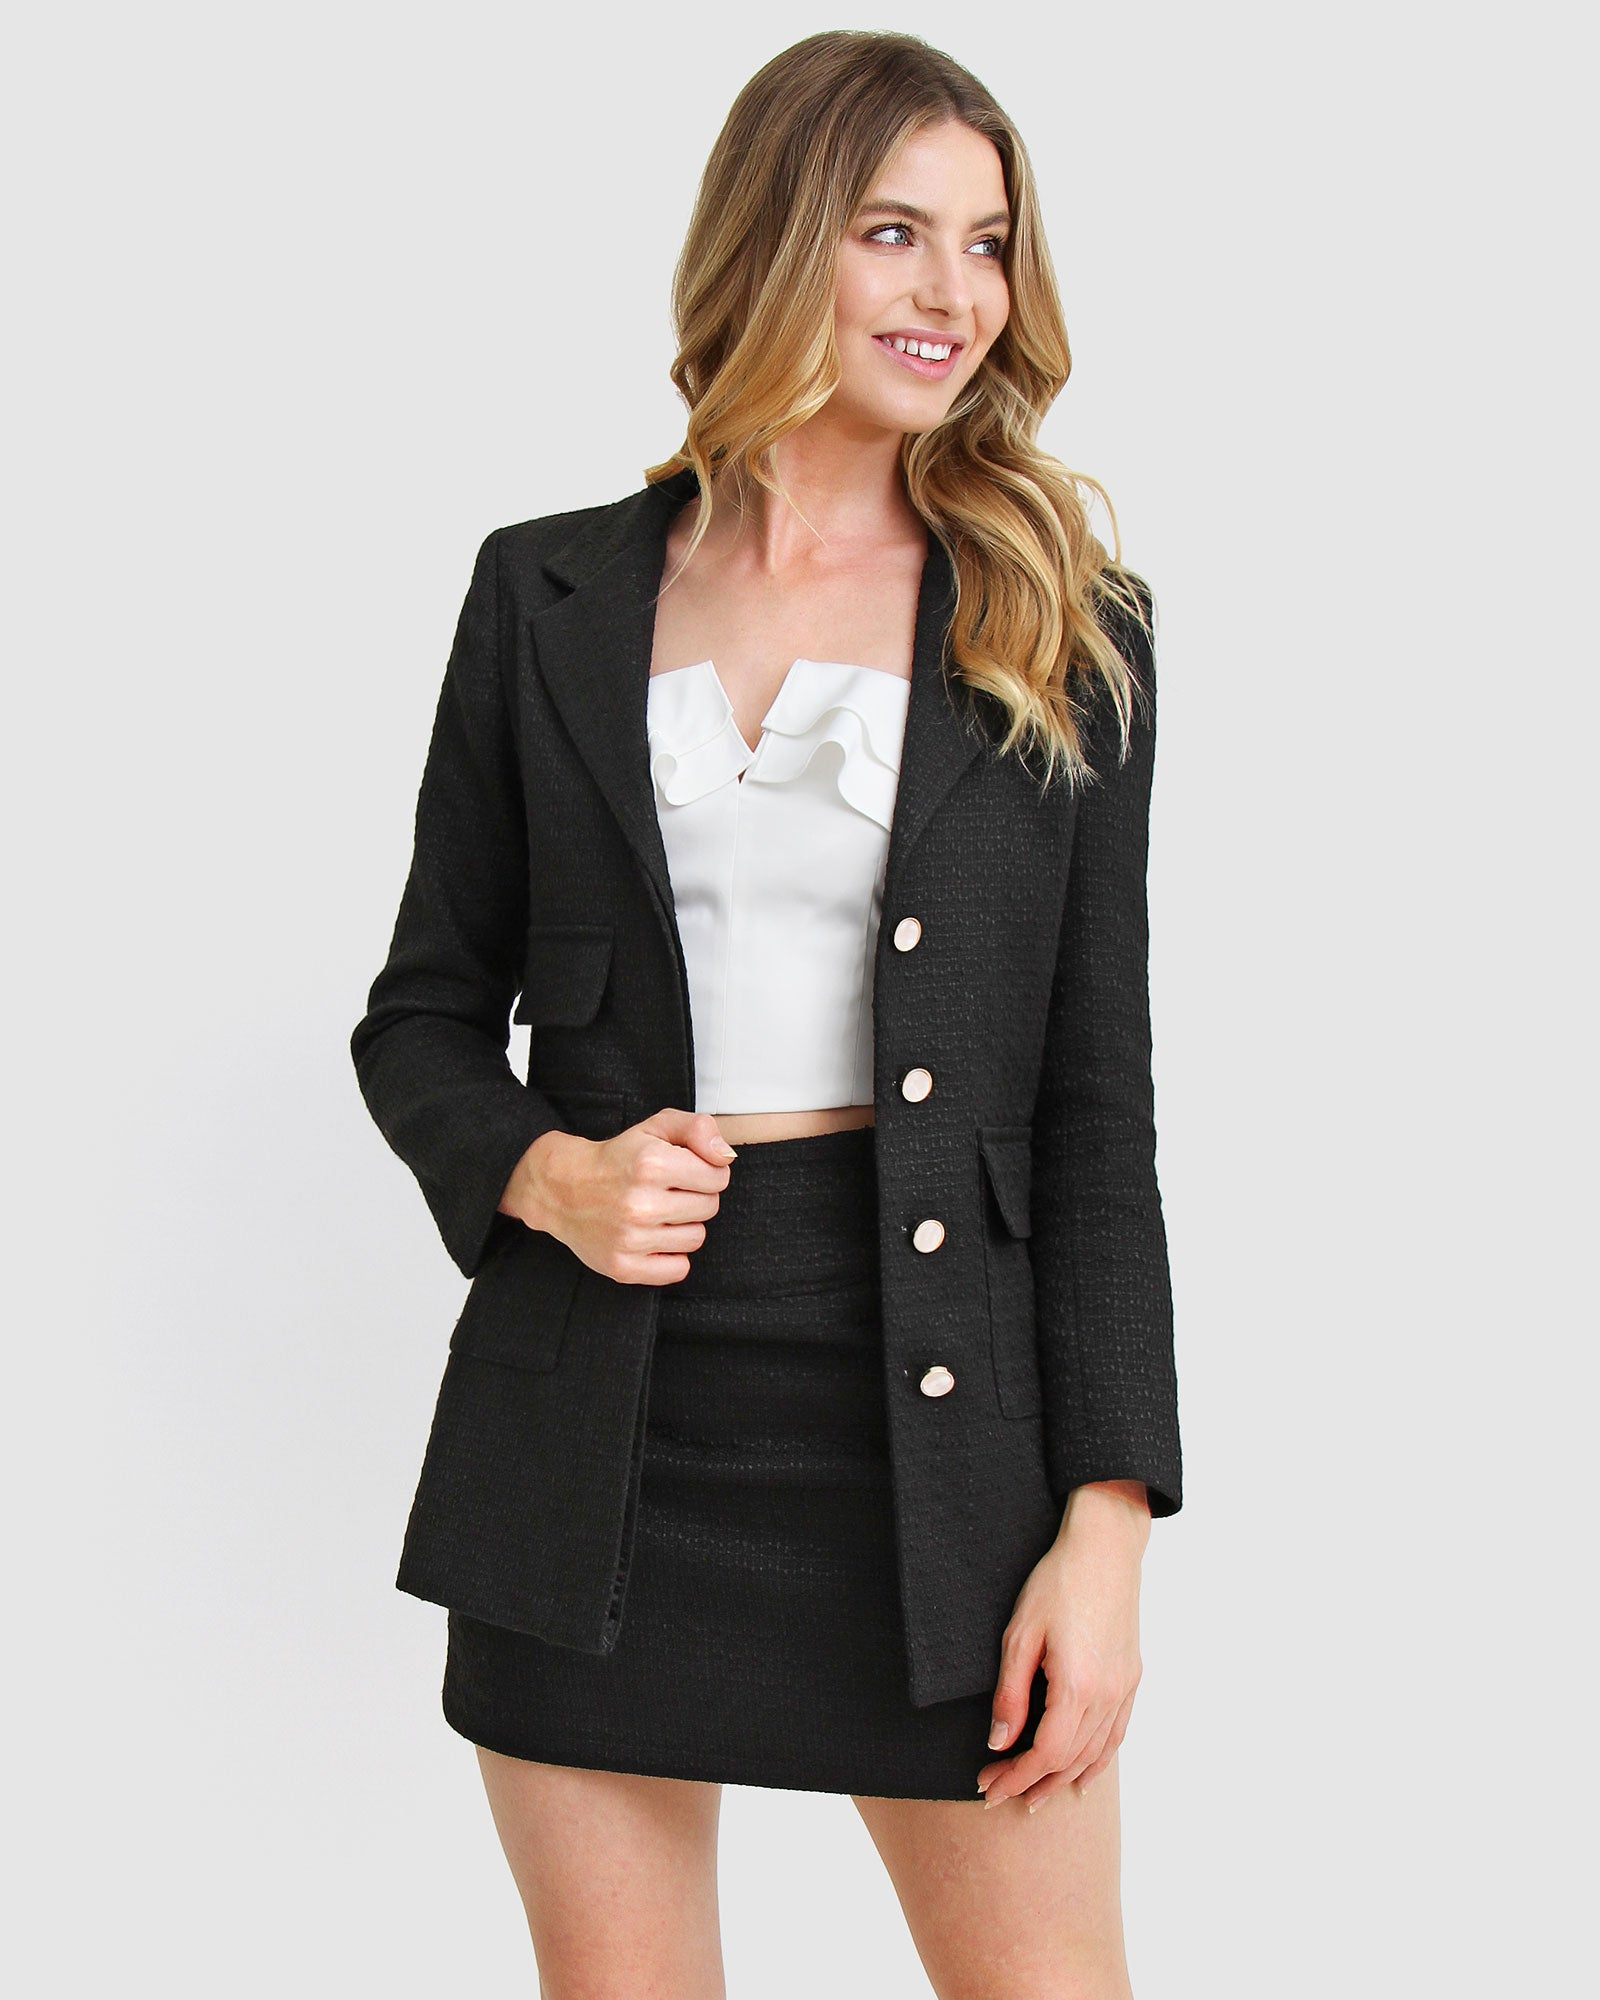 Paddington Fair Jacket - Black